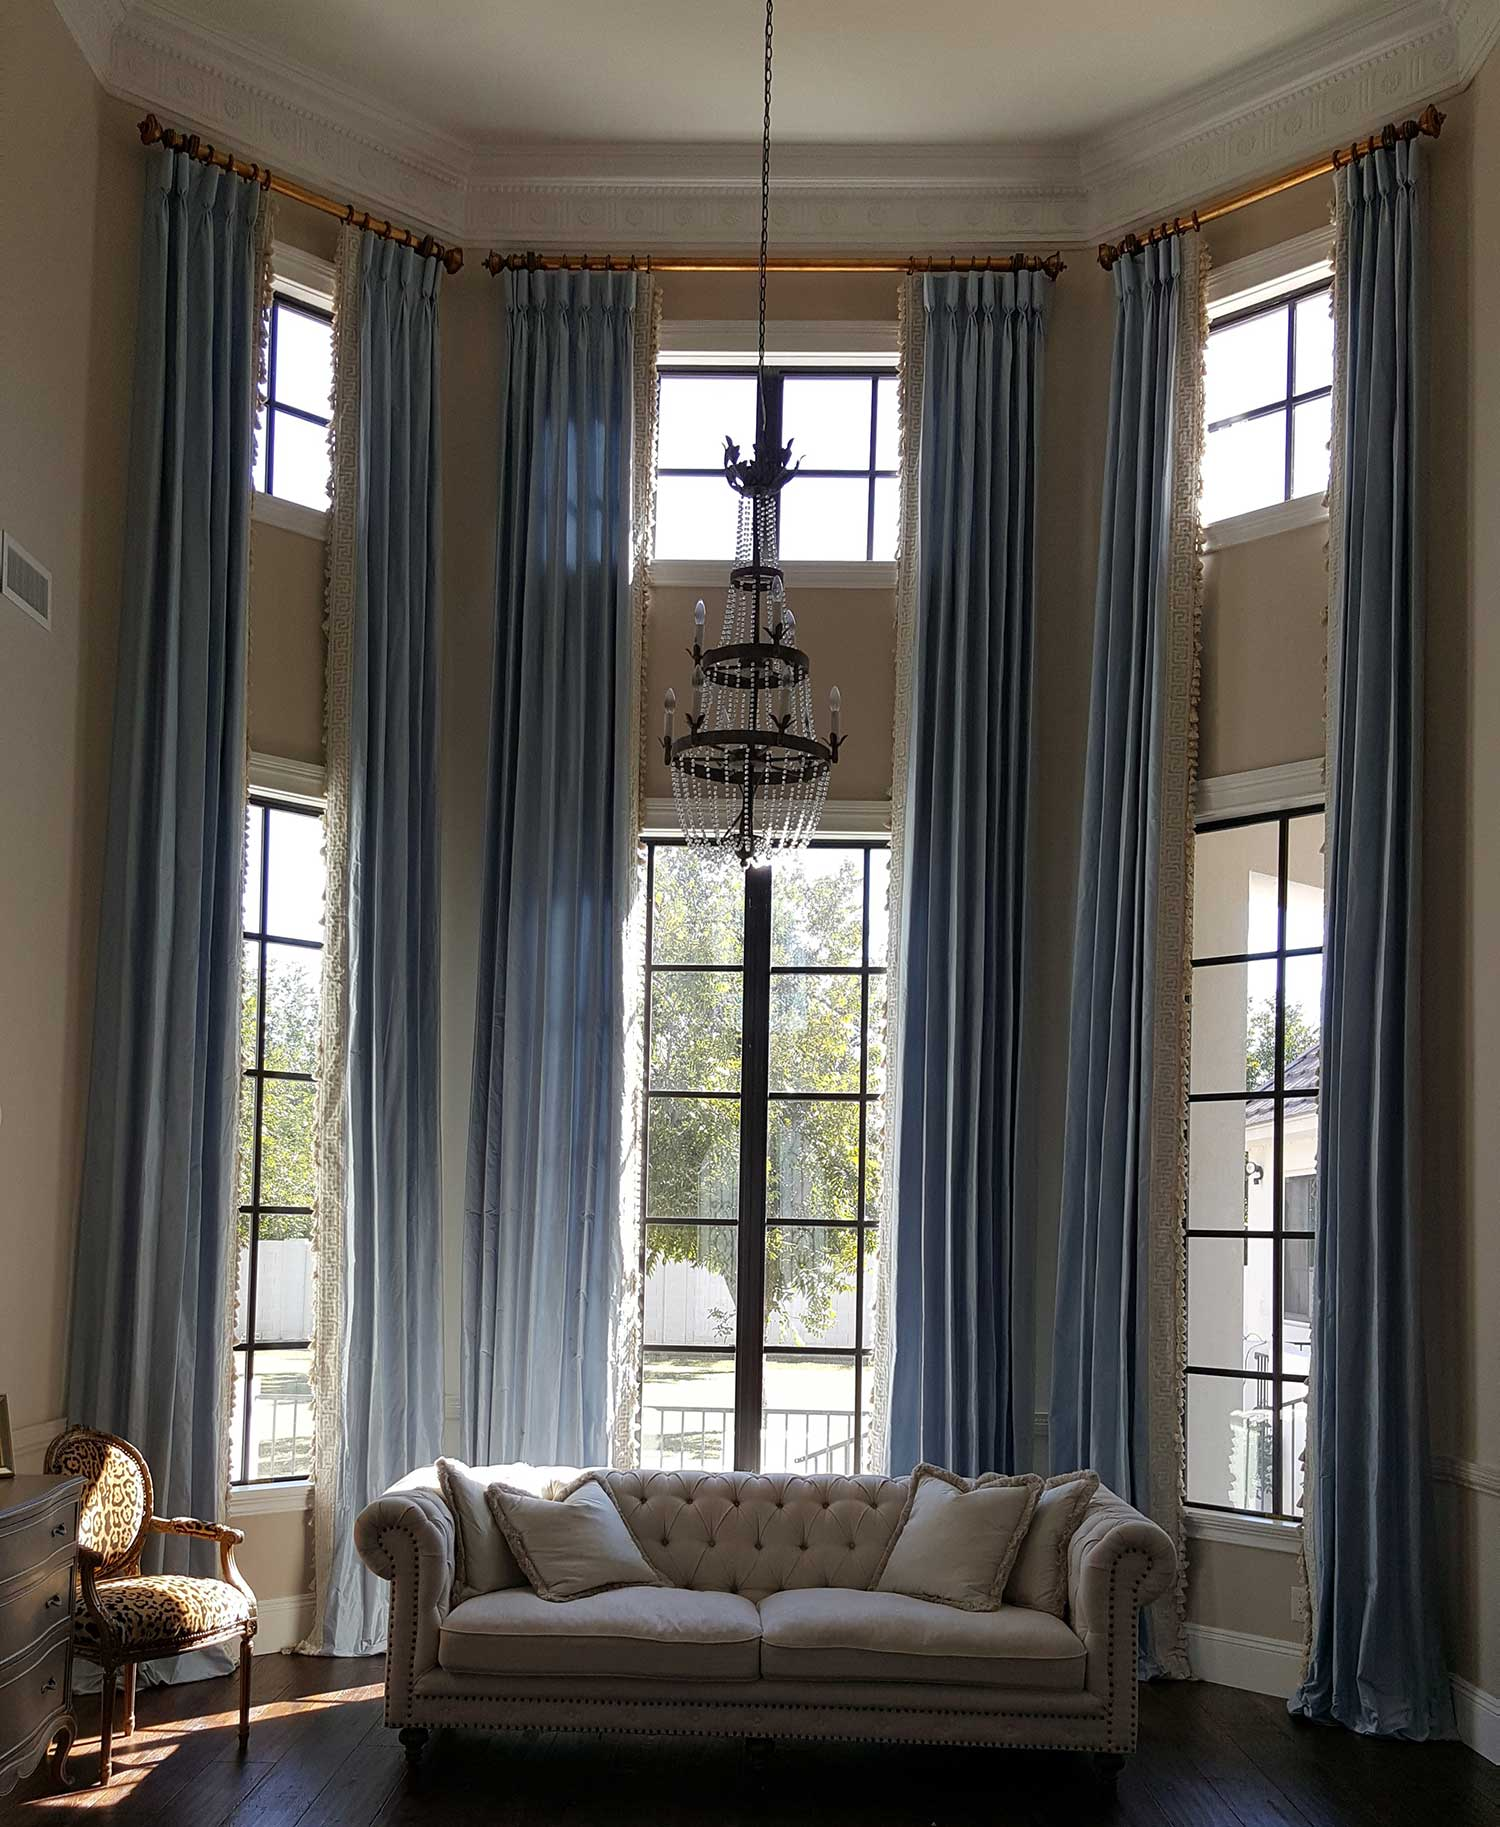 large, angled windows in a corner of a living room